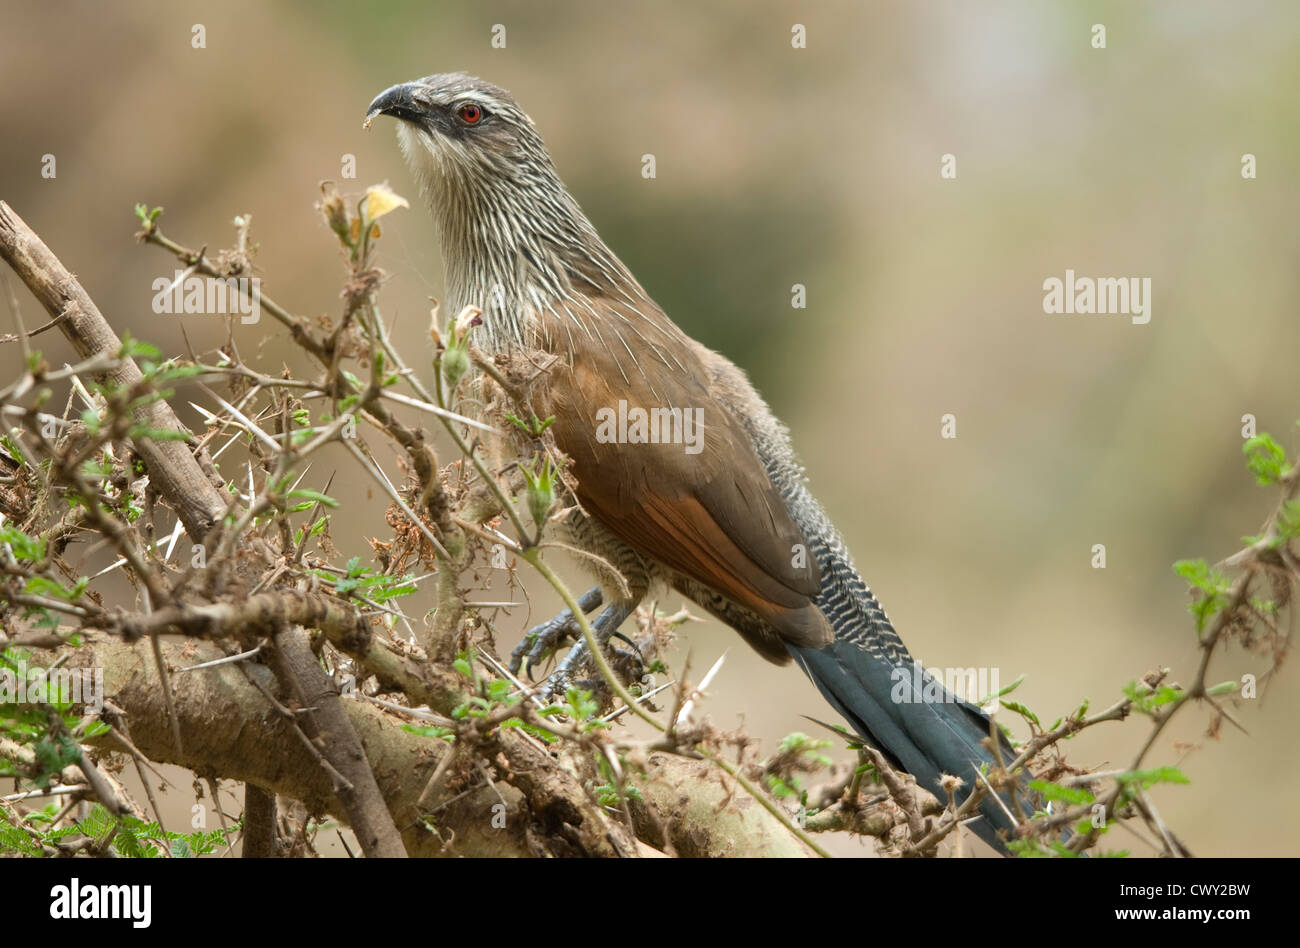 White-browed Coucal on acacia tree, feeding on small insect - Stock Image